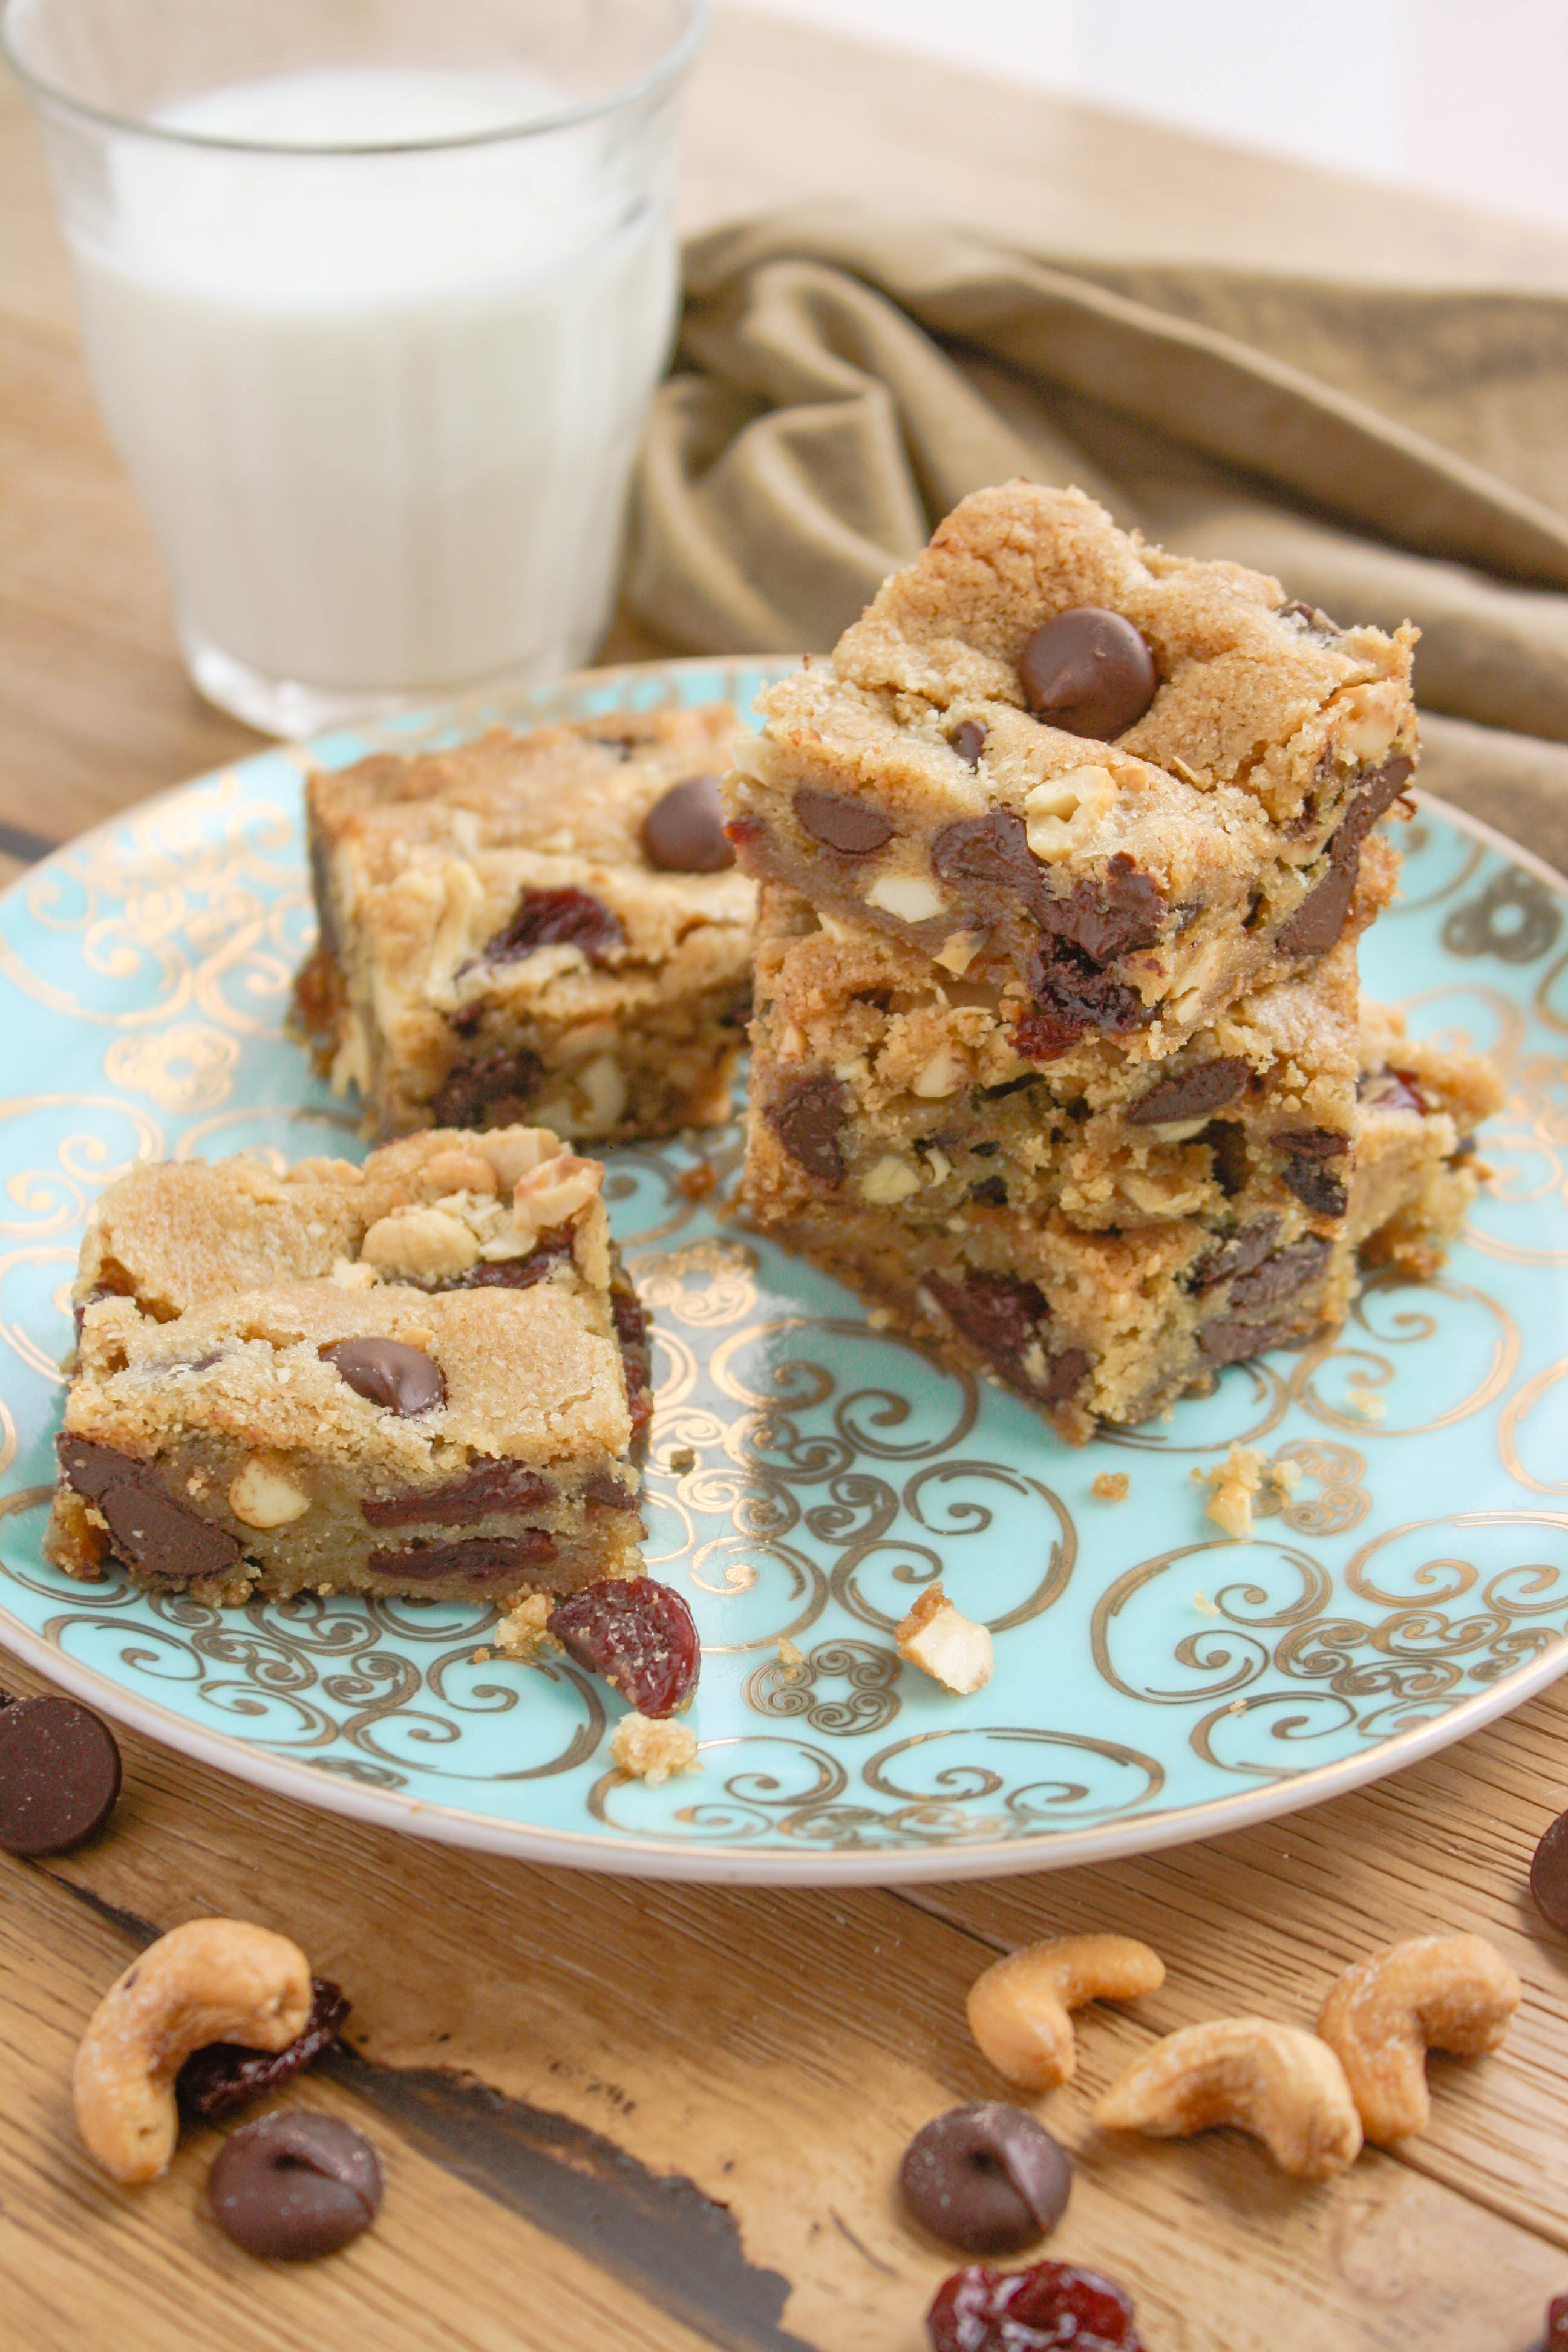 Dark Chocolate Chip Cherry Cashew Cookie Bars are fabulous and rich. These bars are filled with great ingredients for a delicious treat.